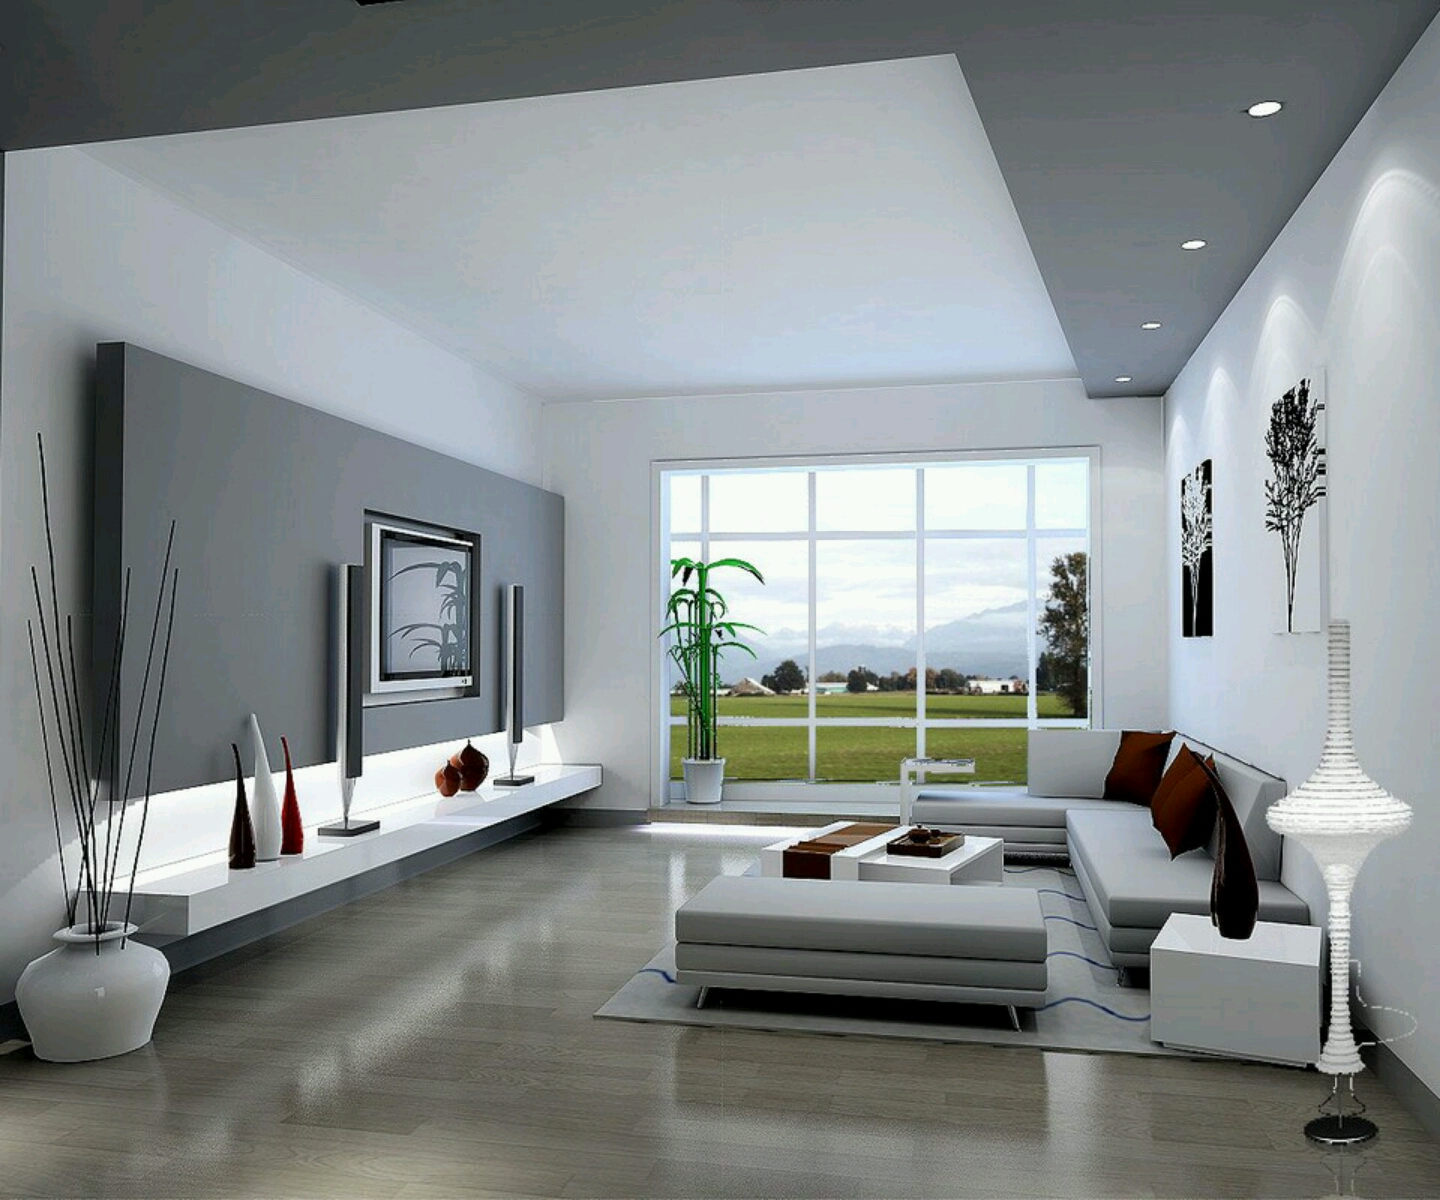 New home designs latest modern living rooms interior for Interior designs modern